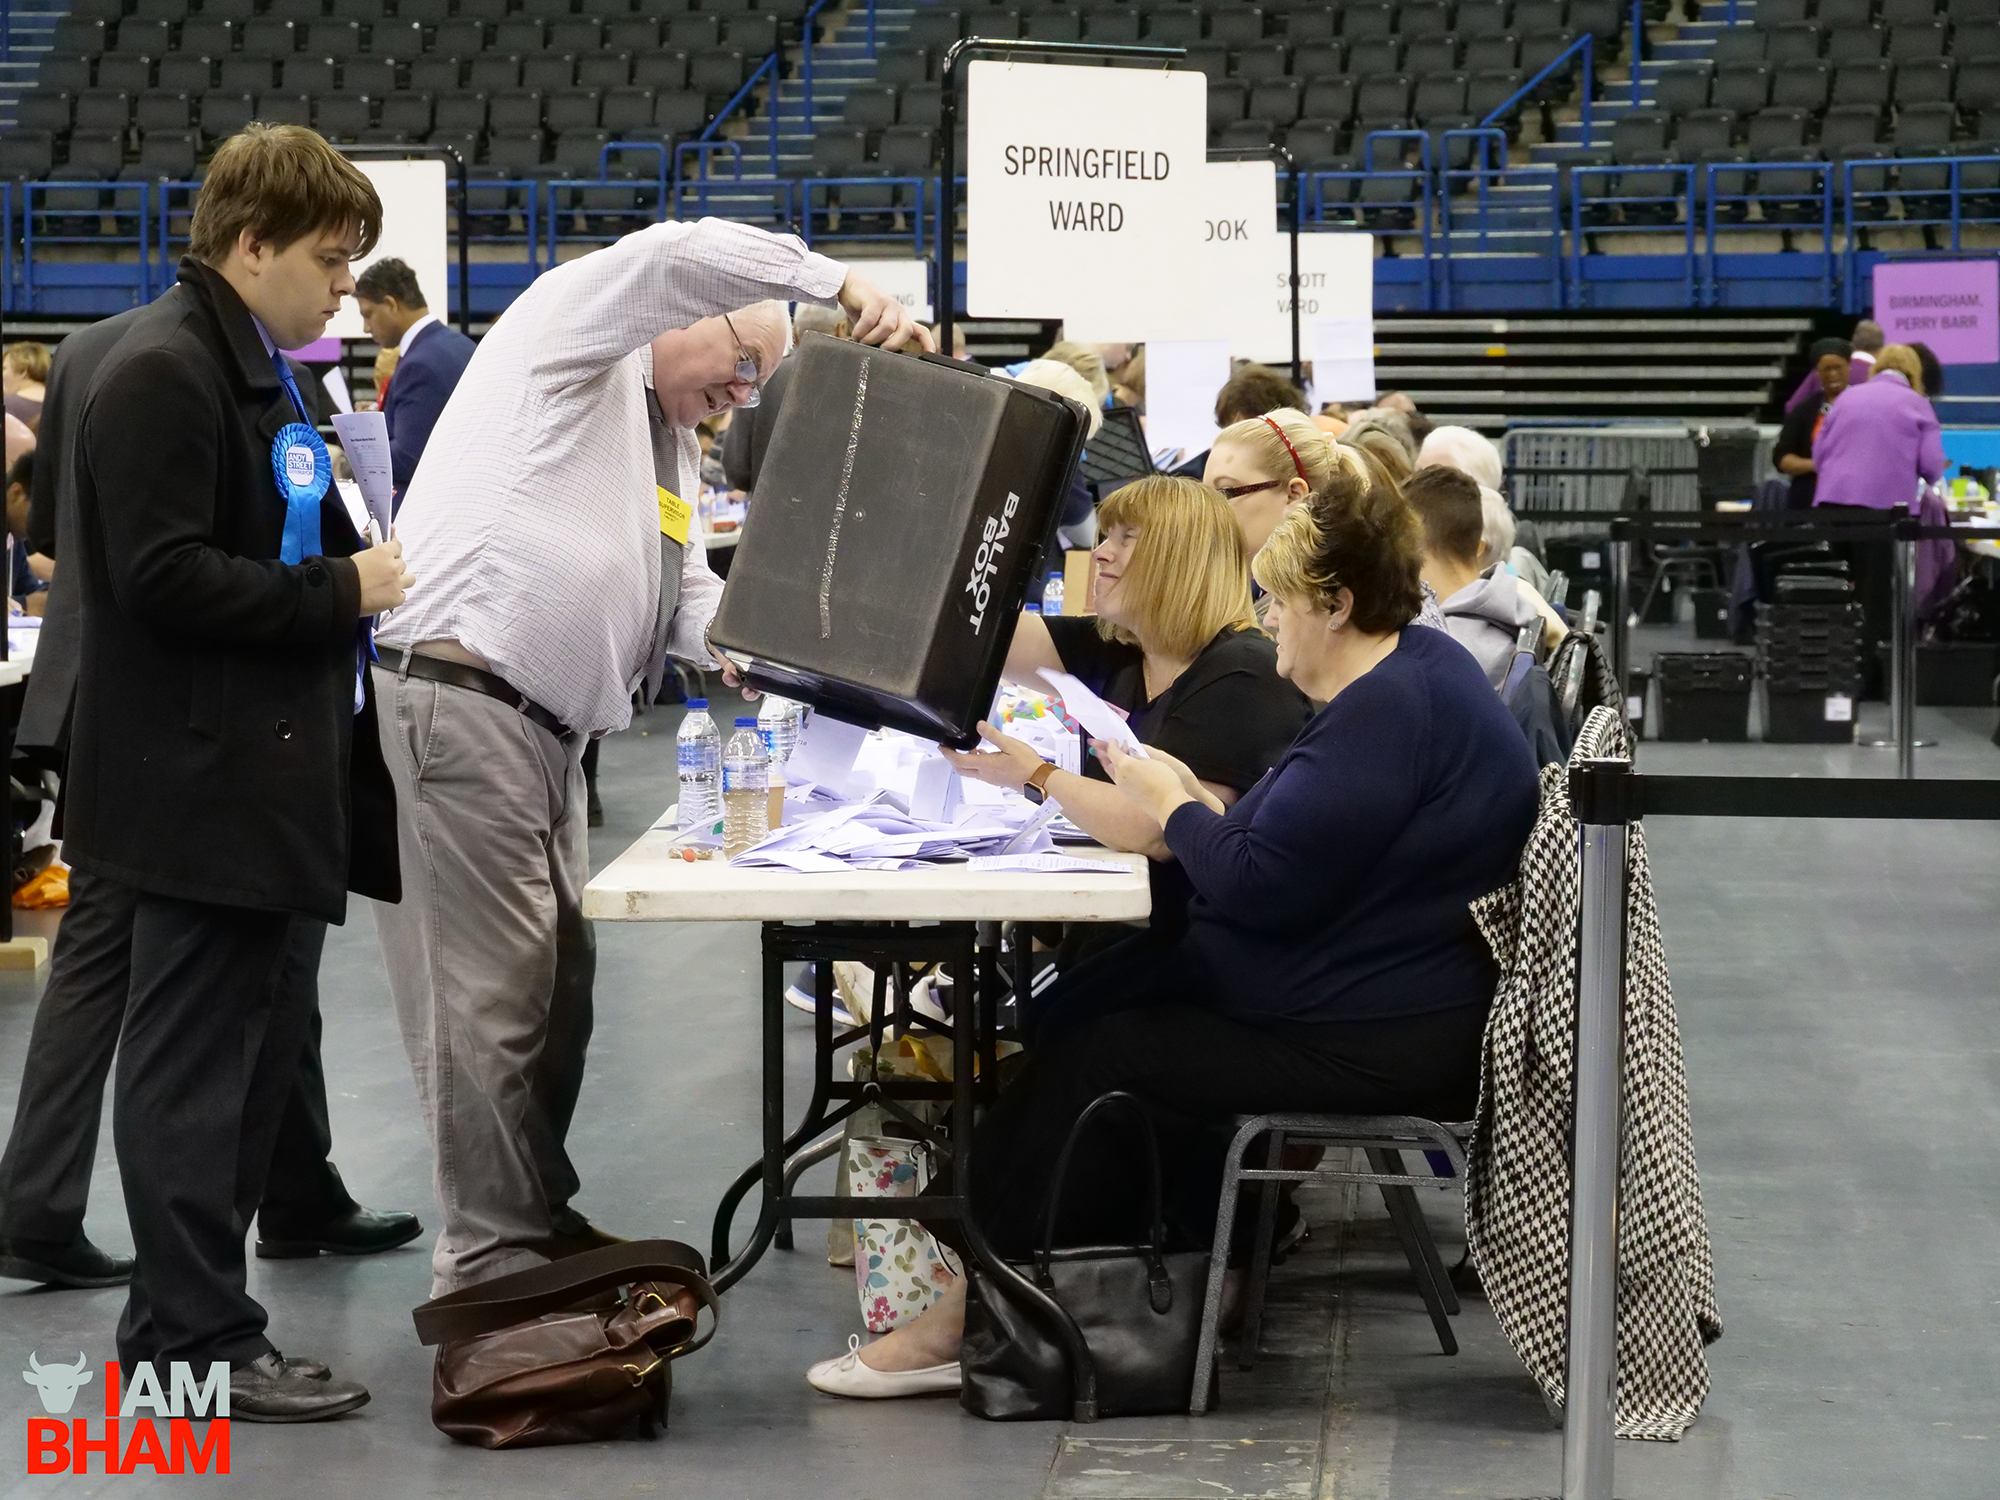 A ballot box is brought into the Birmingham Barclaycard Arena during the West Midlands Mayoral Election vote count